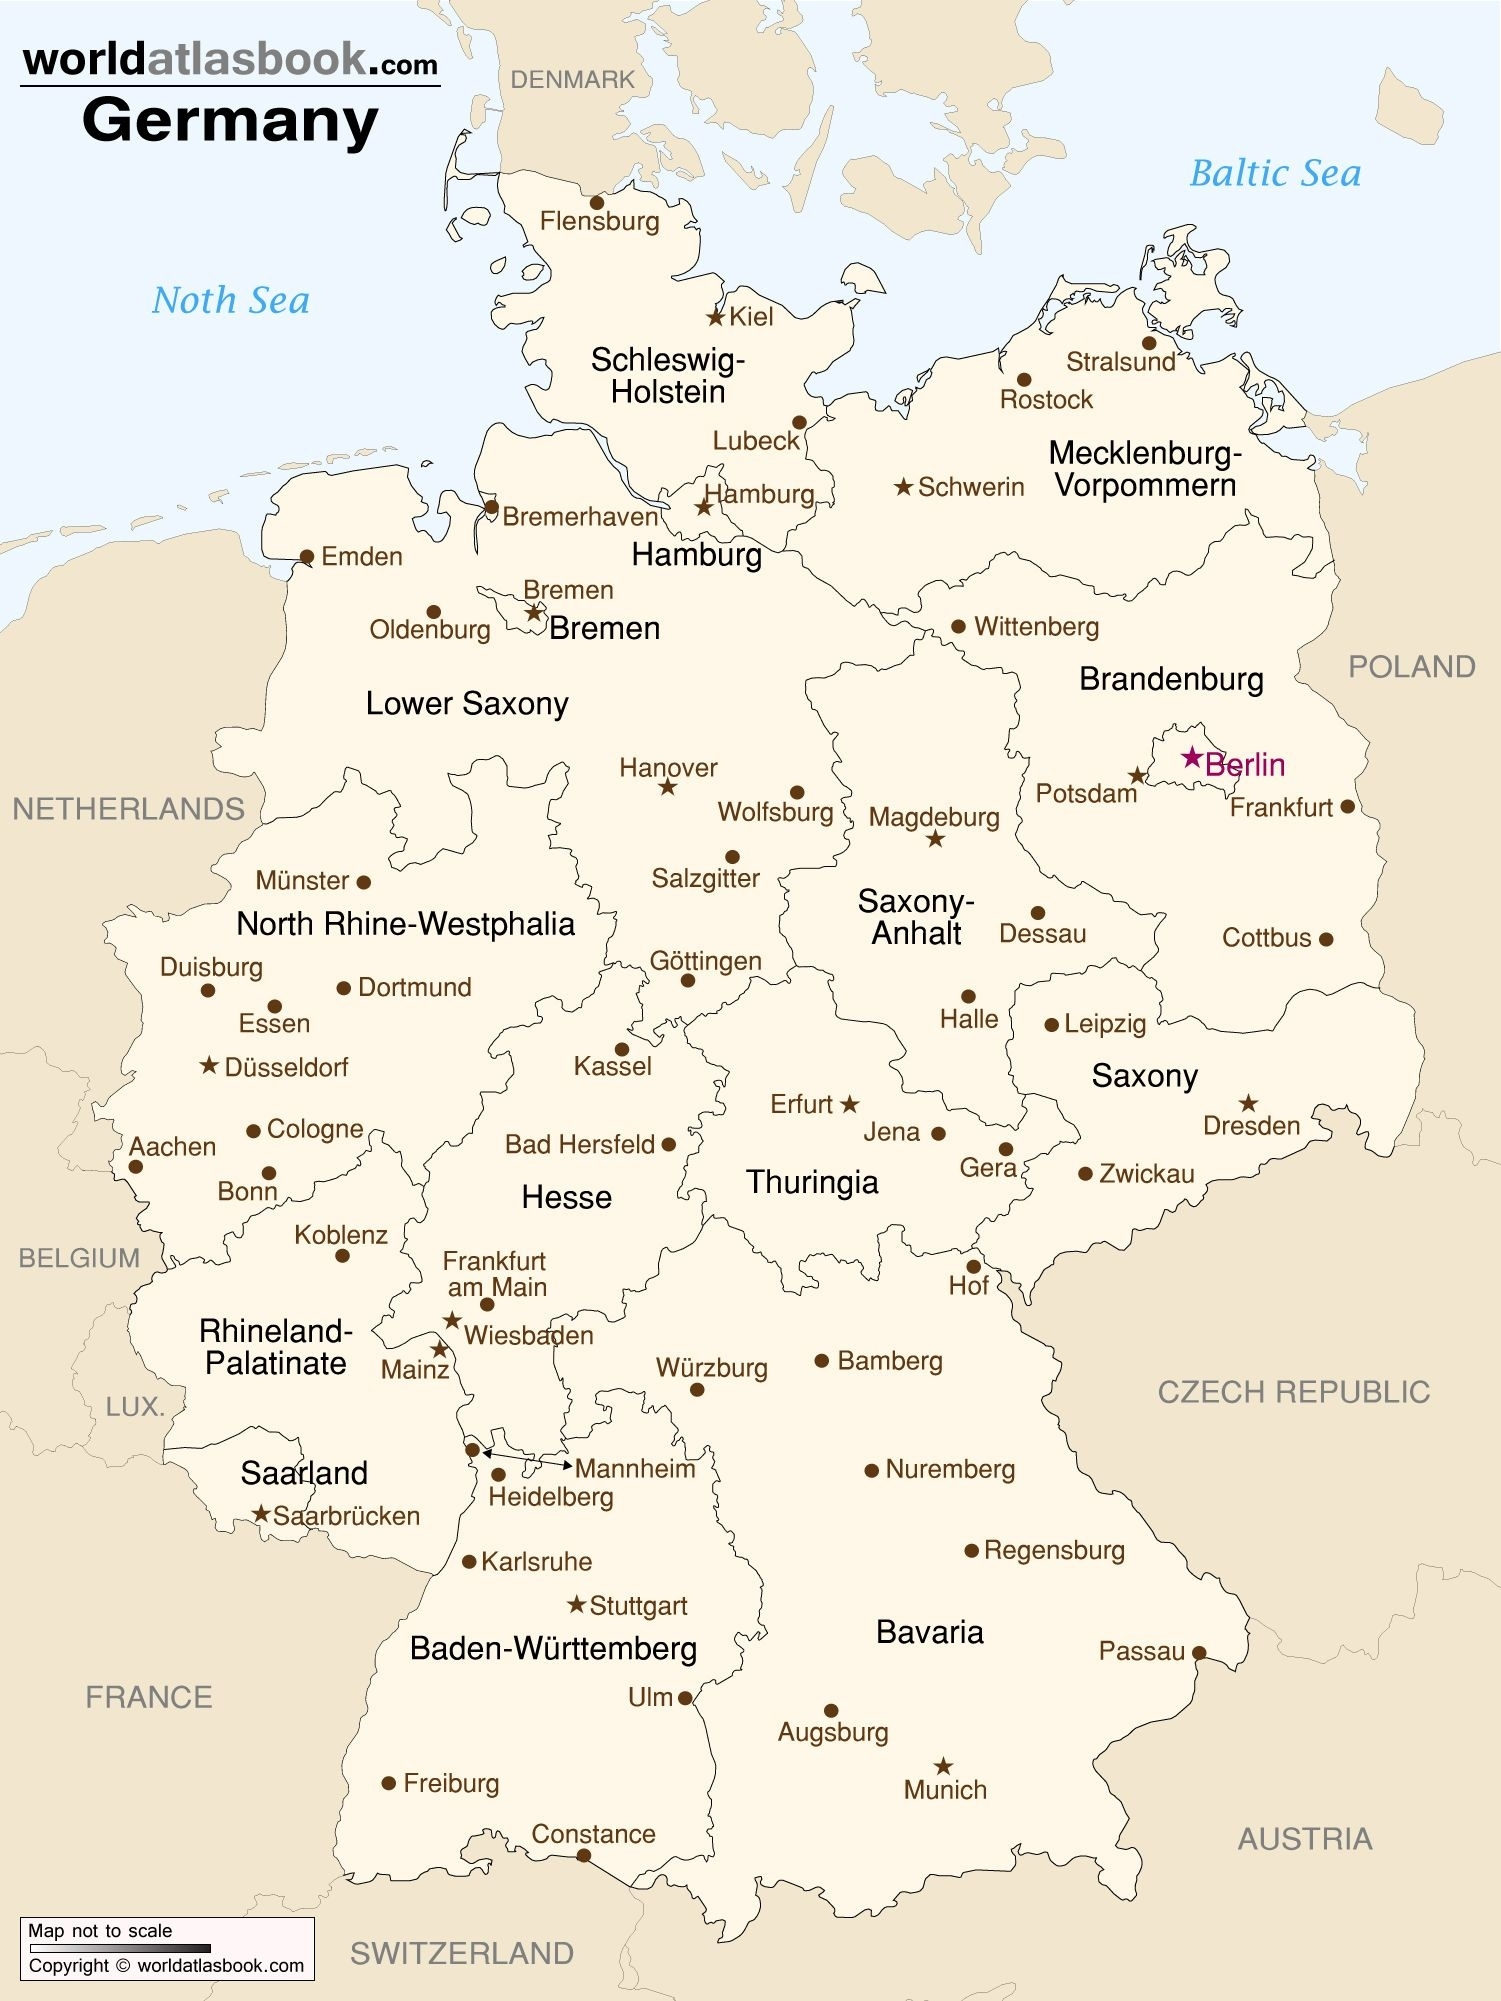 Map Of Germany With States And Cities | Germany | Map, Germany regarding German Map With States And Cities